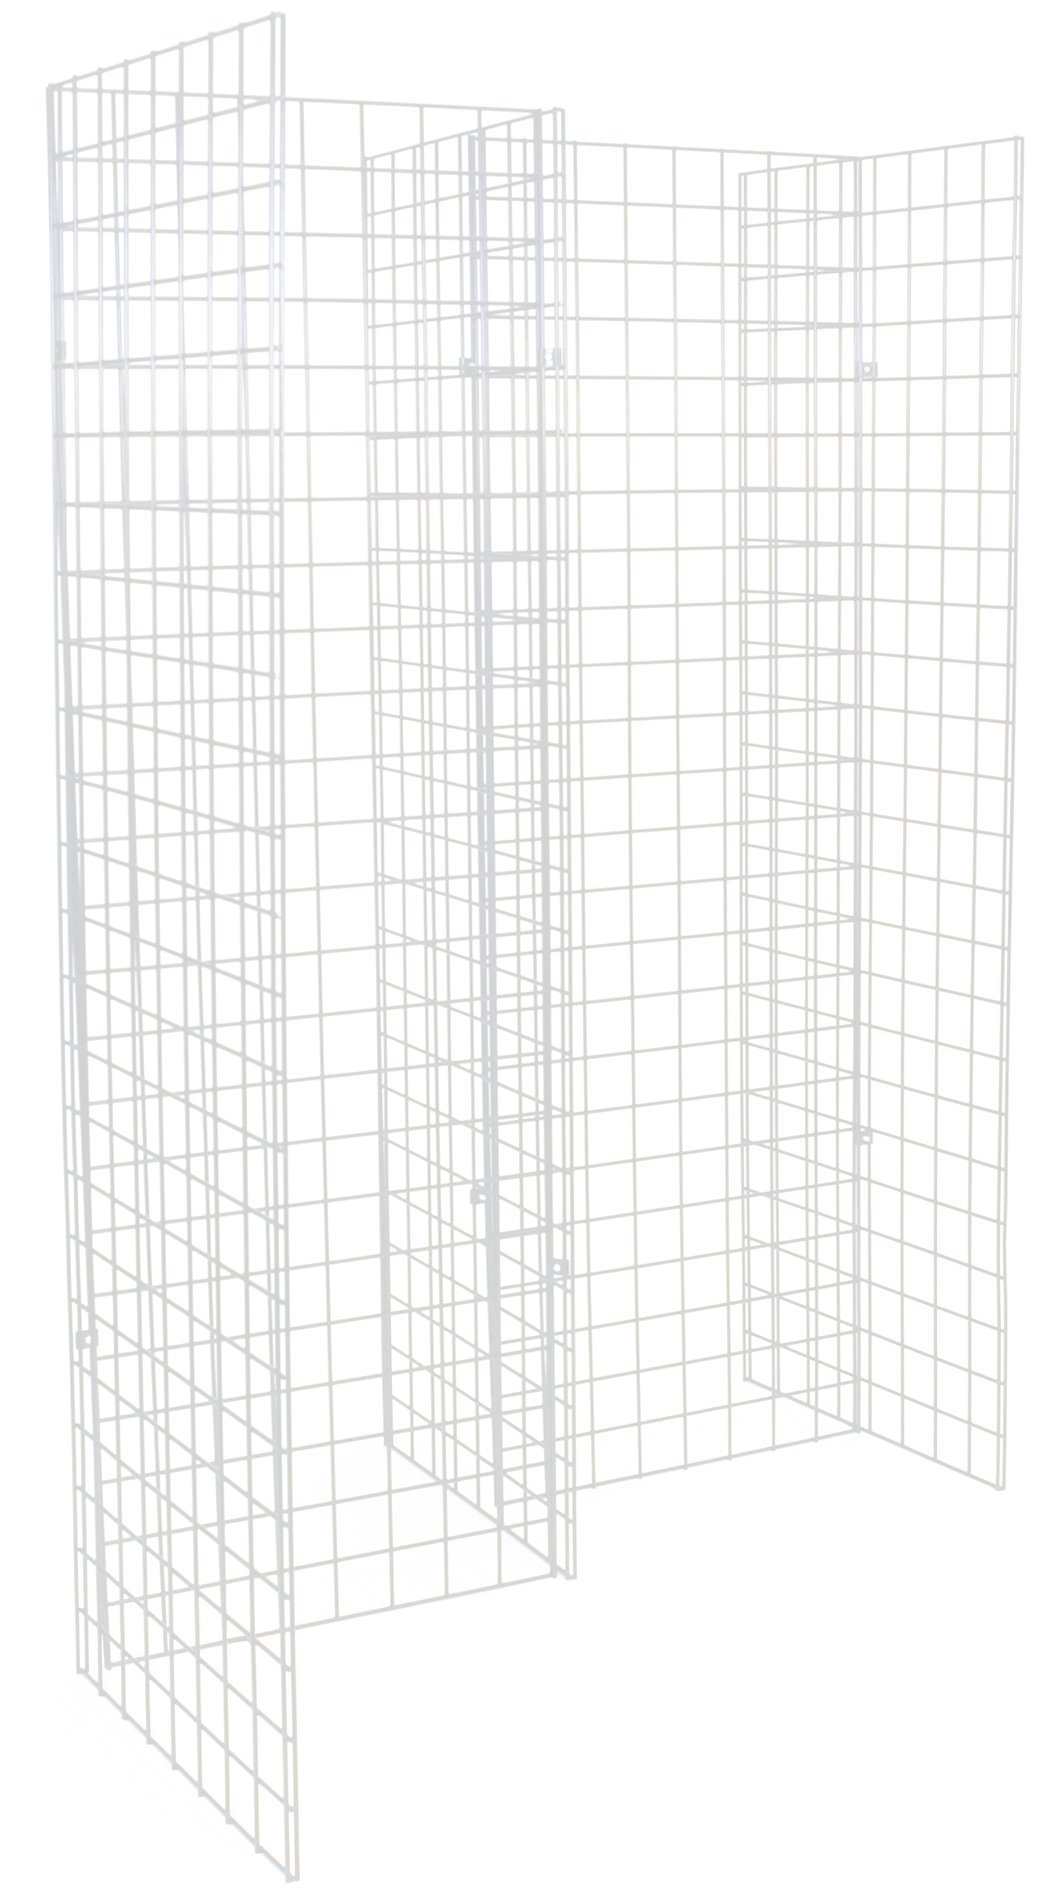 KC Store Fixtures 05315 Freestanding Grid Unit with 5 2' x 6' Panels, White